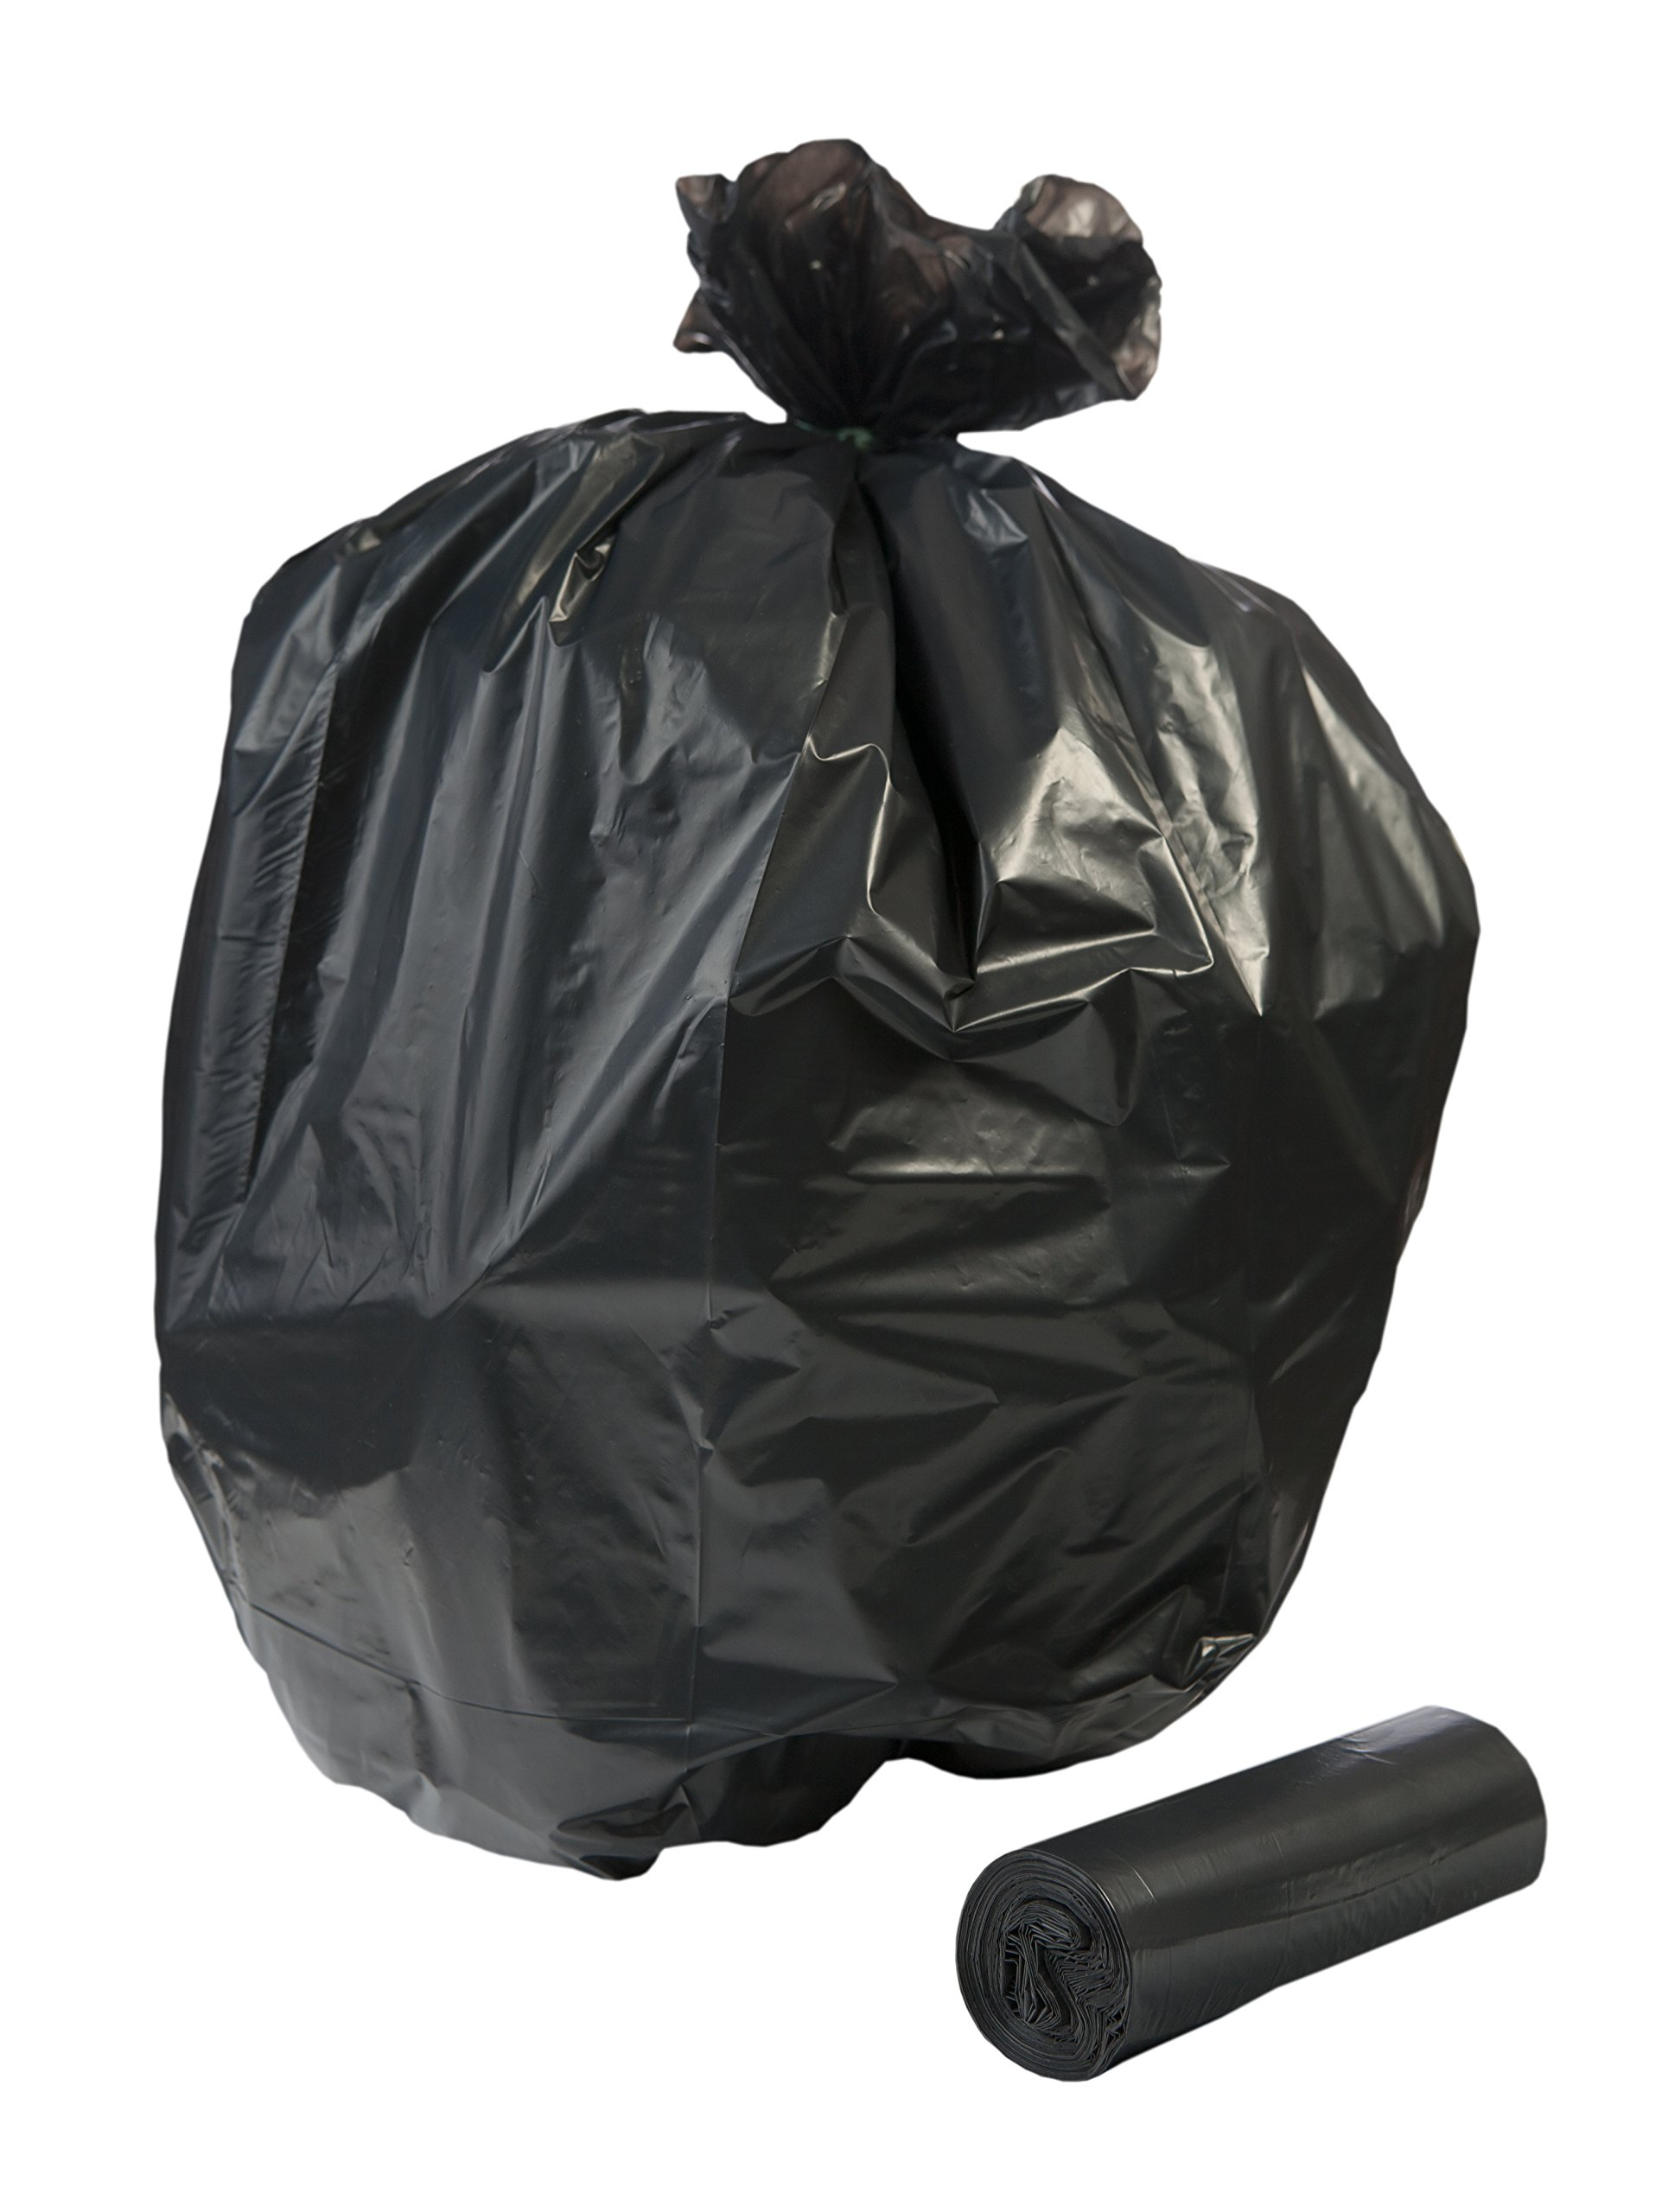 TLD-71BL, 60 Gallon, EXTRA Heavy Duty Contractor Bags, 50 count With Ties, 3 Mil Thick Low Density, BLACK, 38x60 inches, MADE IN USA